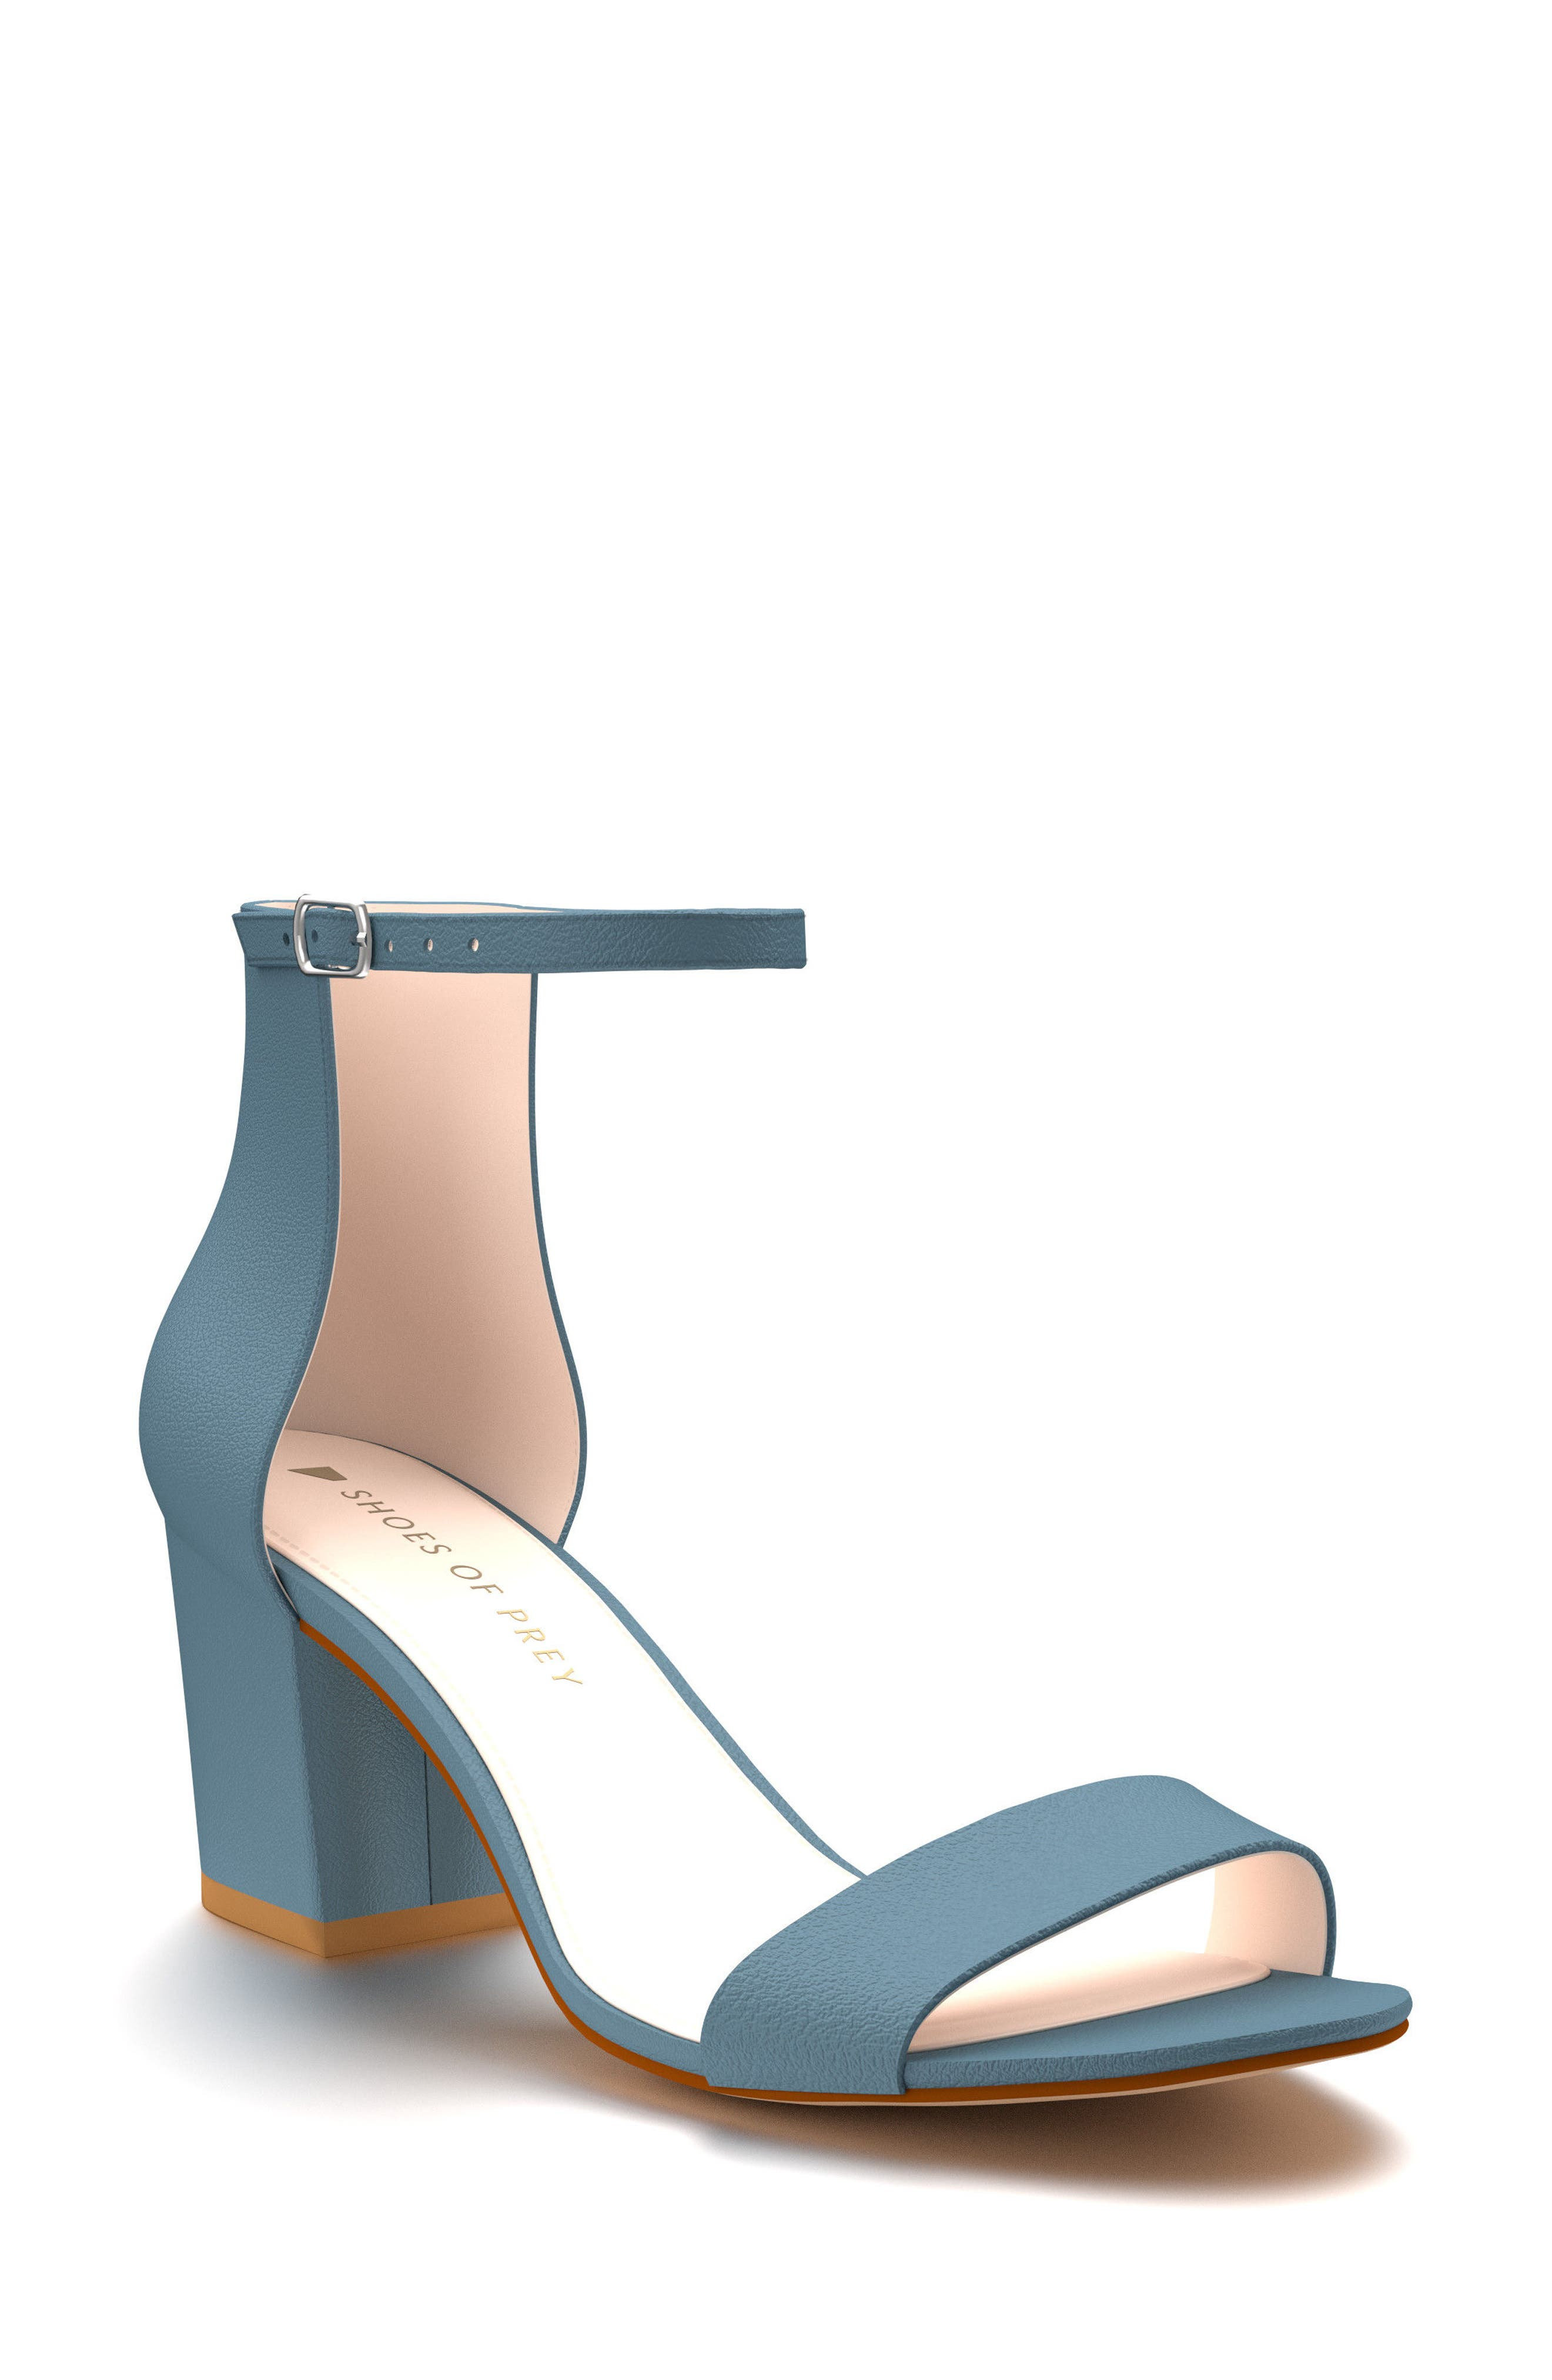 Shoes of Prey Block Heel Sandal (Women)